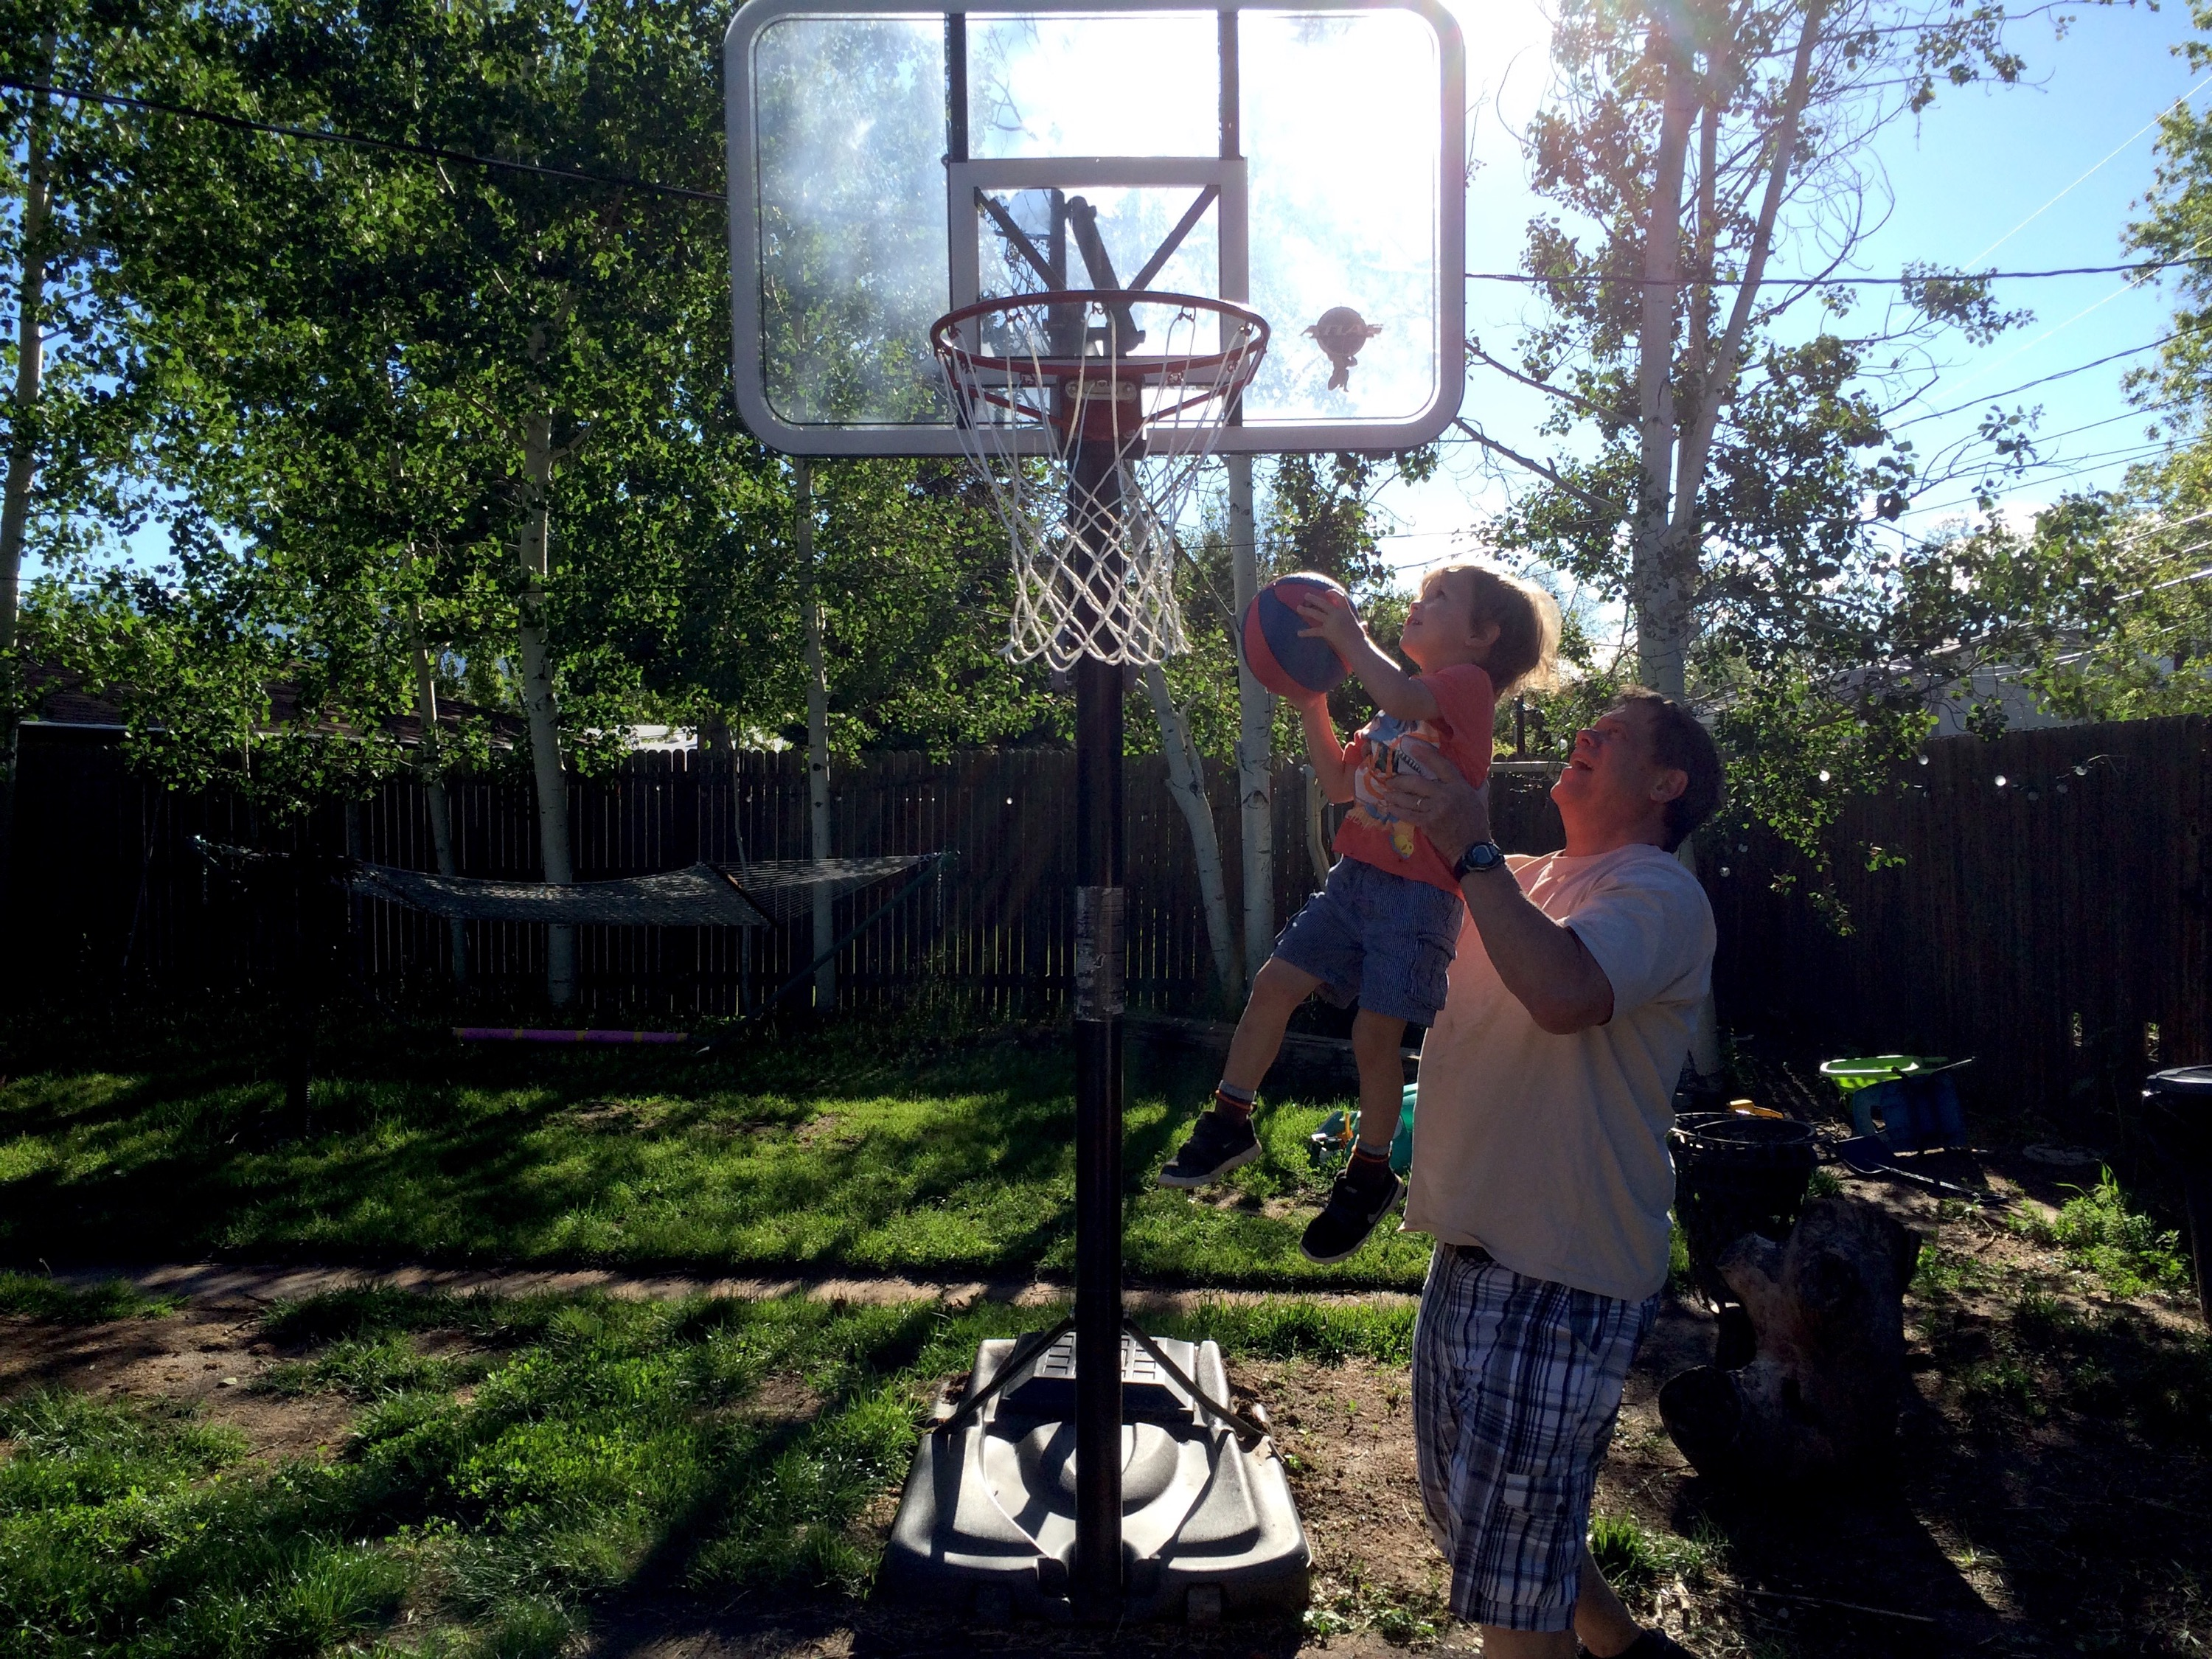 Felix for the slam dunk! (with an assist from Grandad)